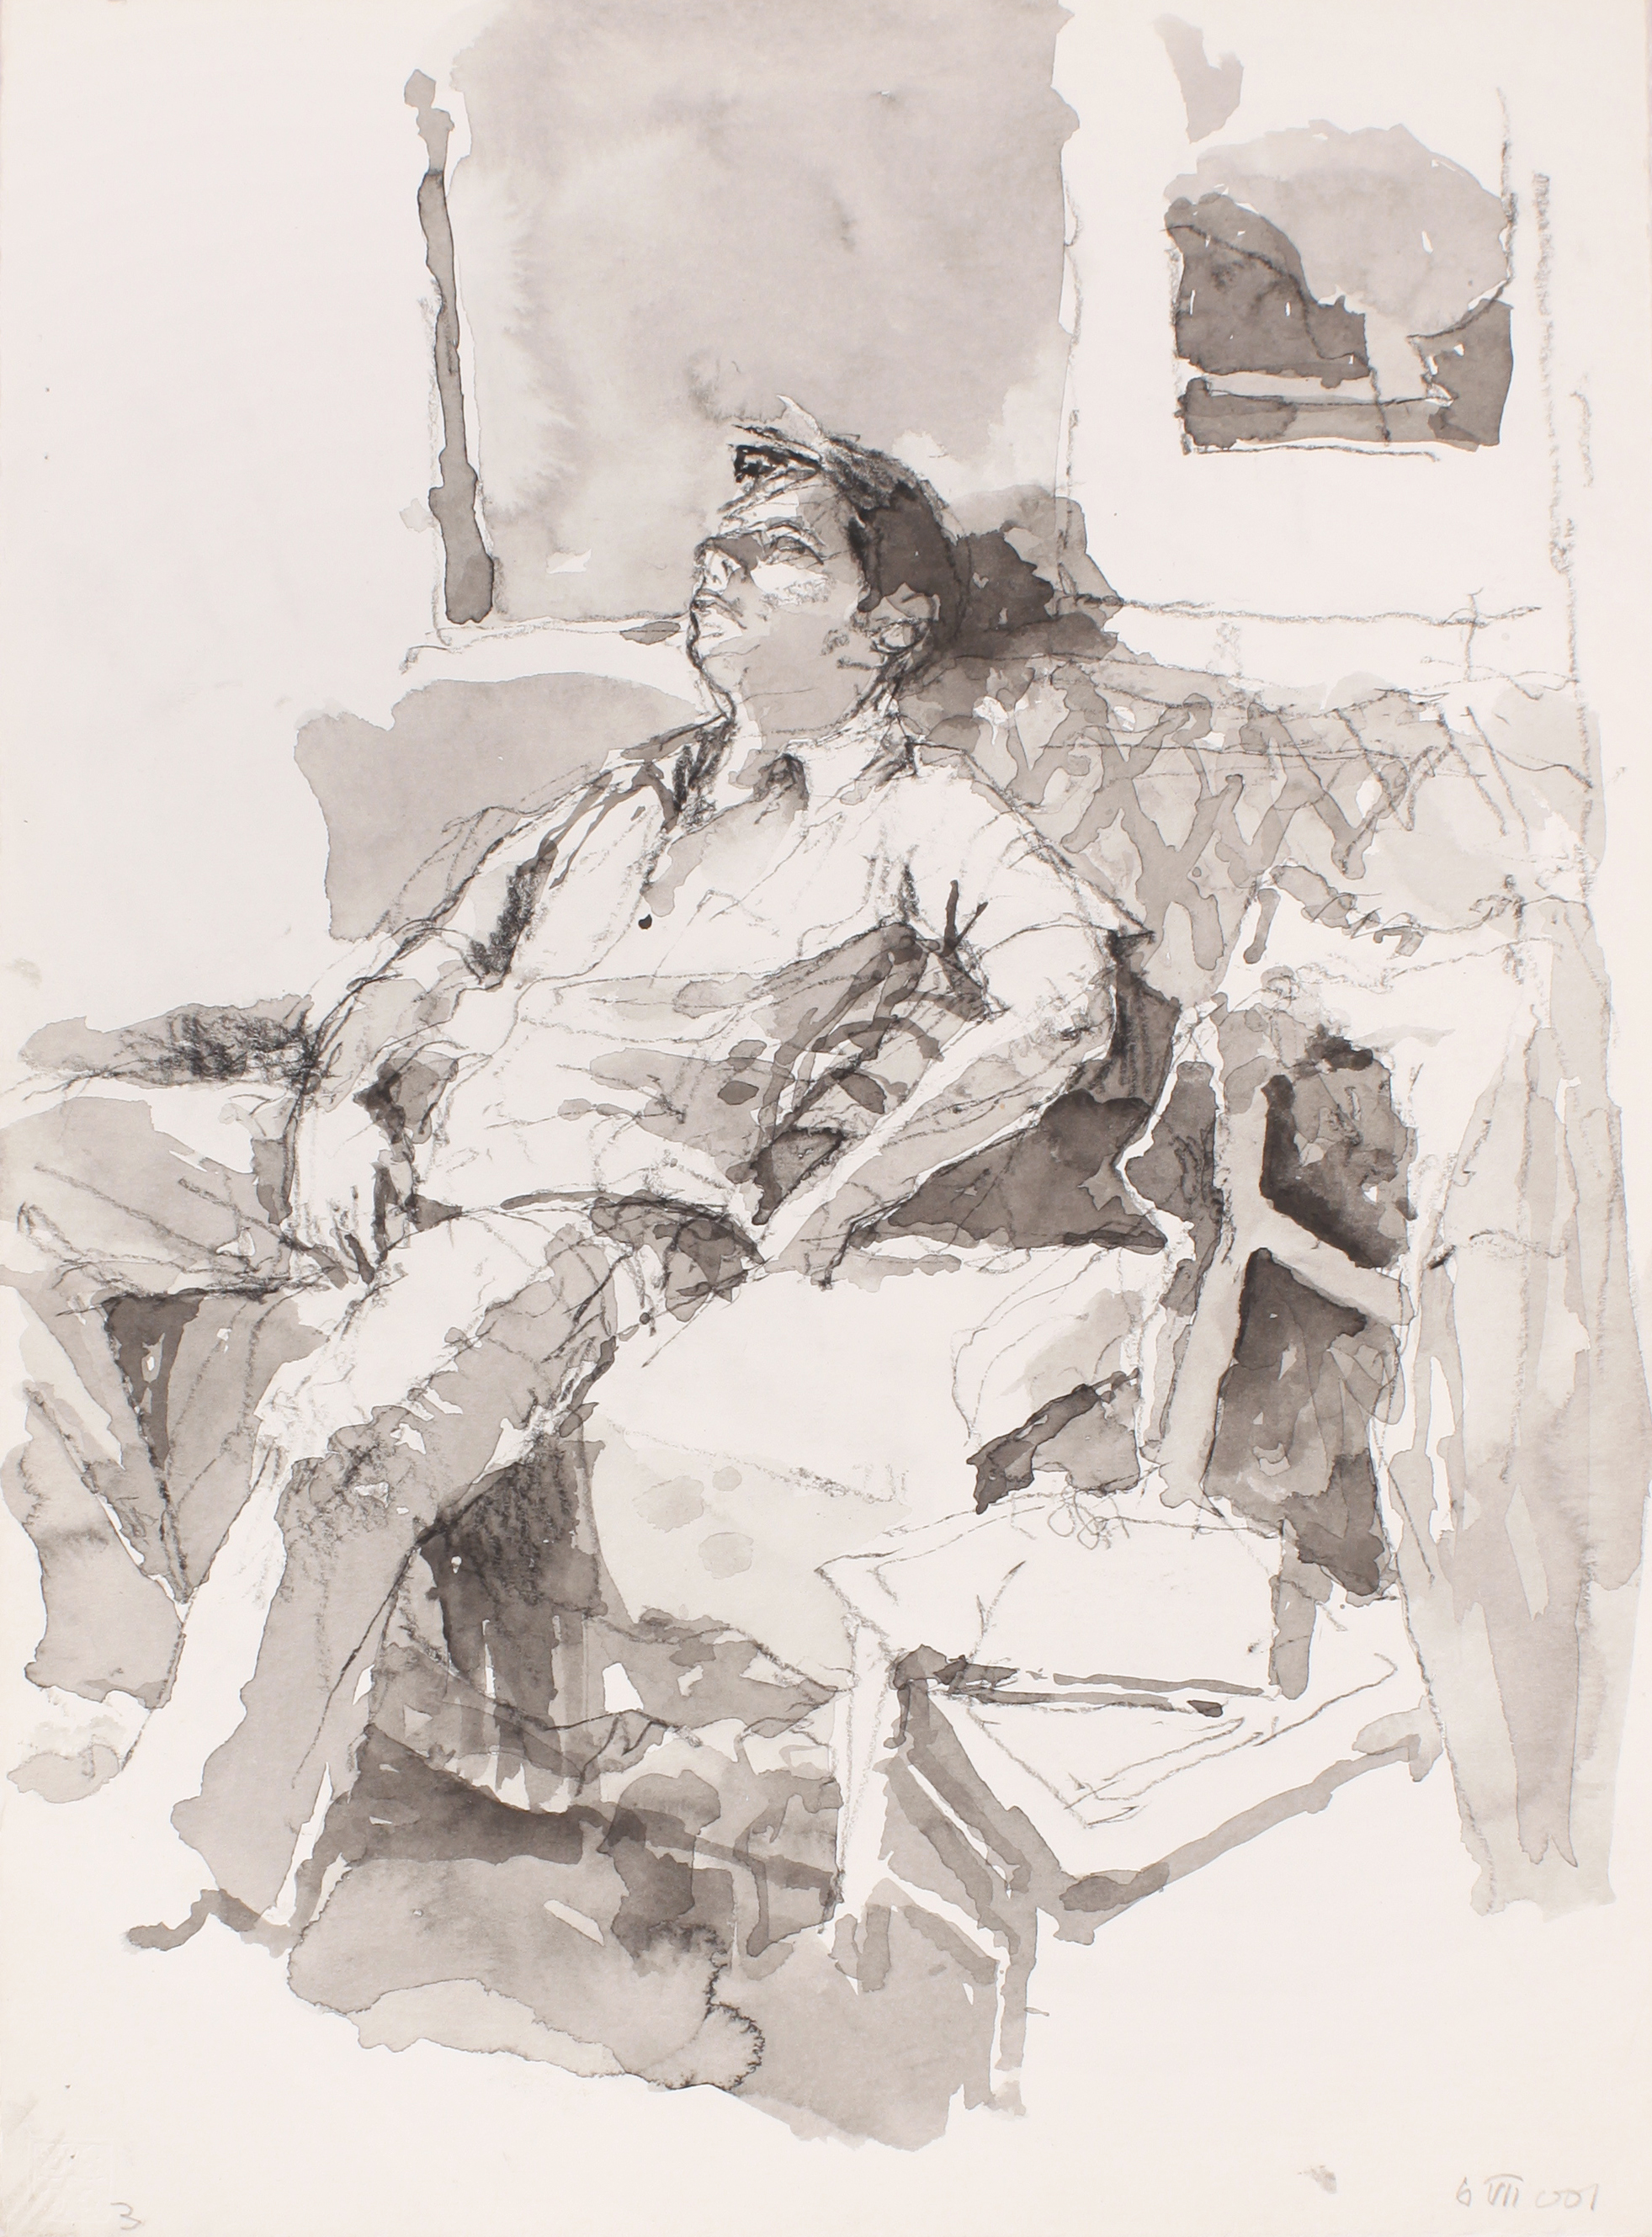 2001_Anthony_on_Sofa_Alongside_Chair_with_Jacket_Figure_in_Studio_watercolour_and_conte_on_paper_15x11in_WPF638.jpg